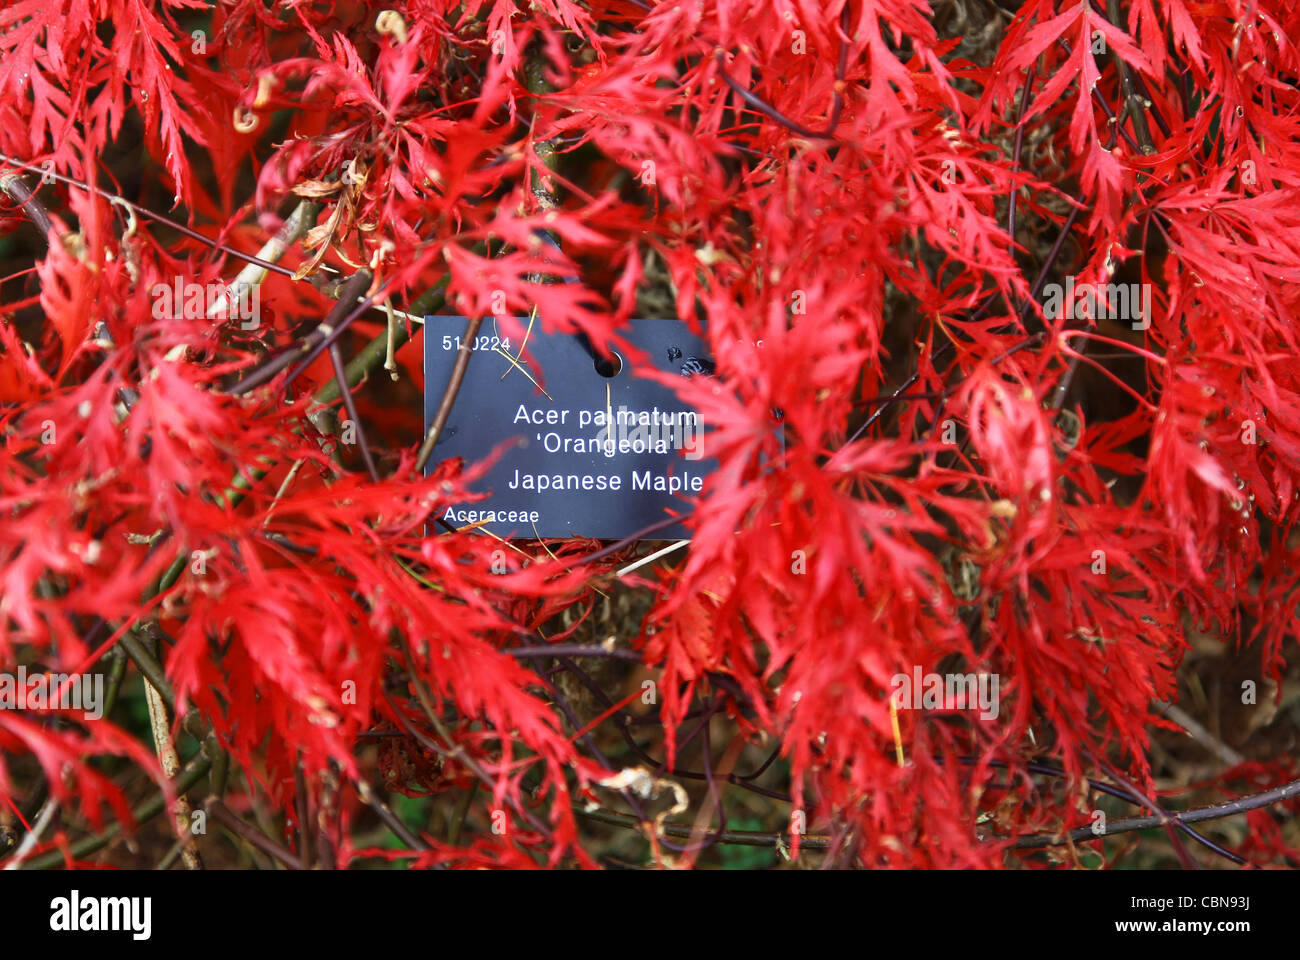 The Red Leaves Of A Japanese Maple Tree Acer Palmatum Orangeola At